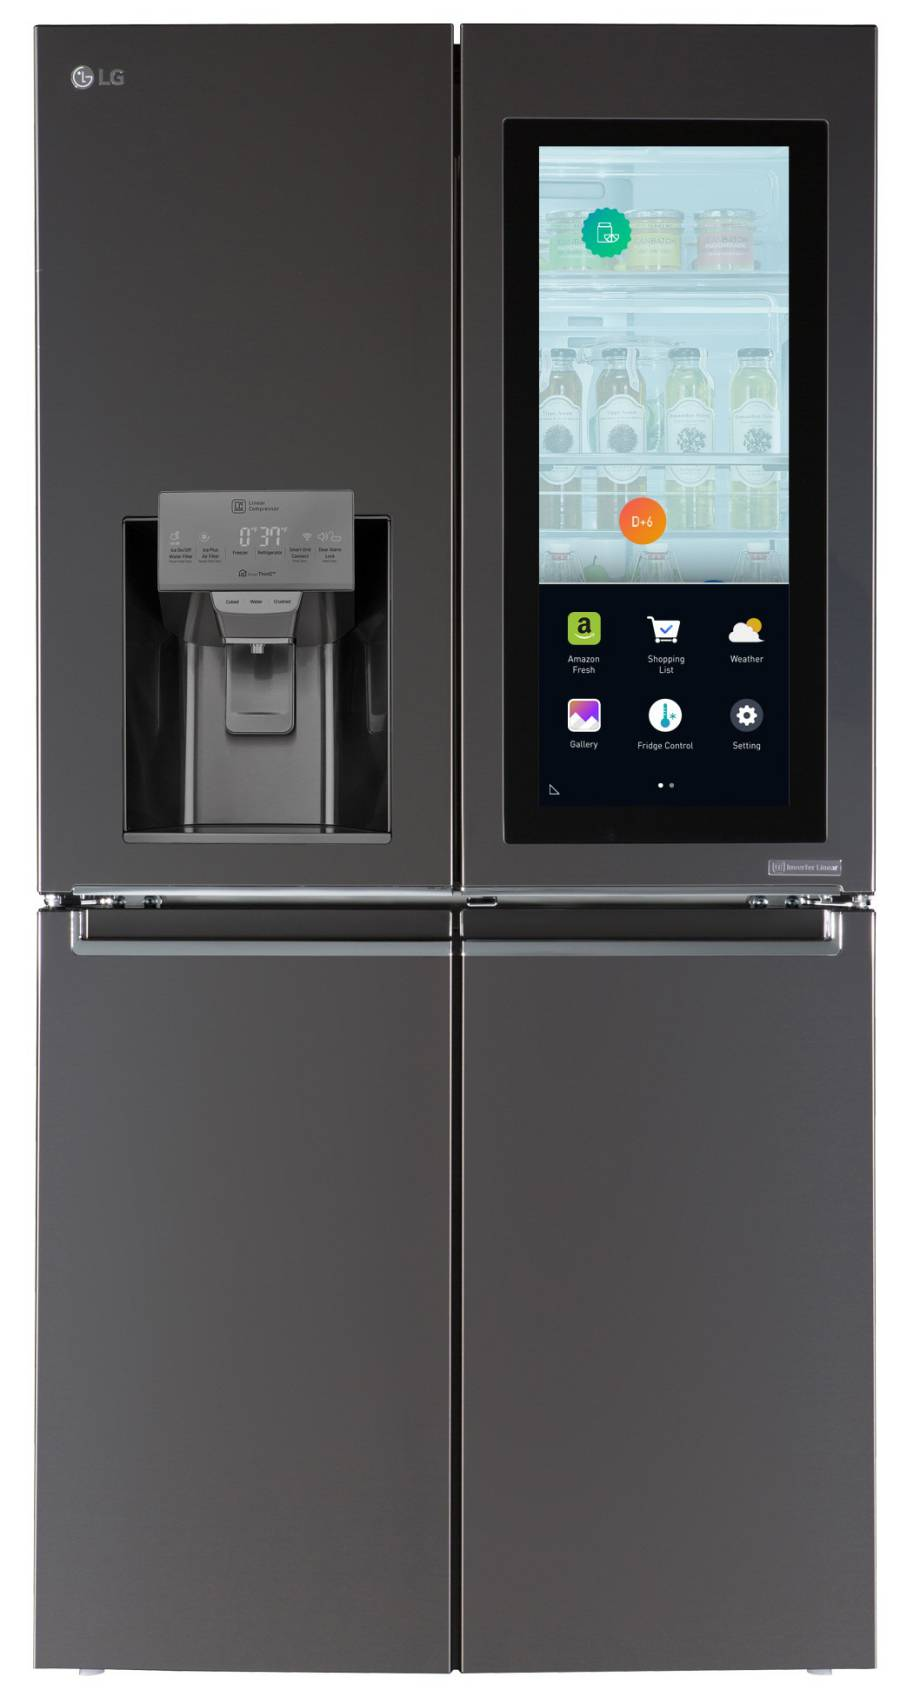 LG-Smart-Instaview-Refrigerator-powered by Alexa